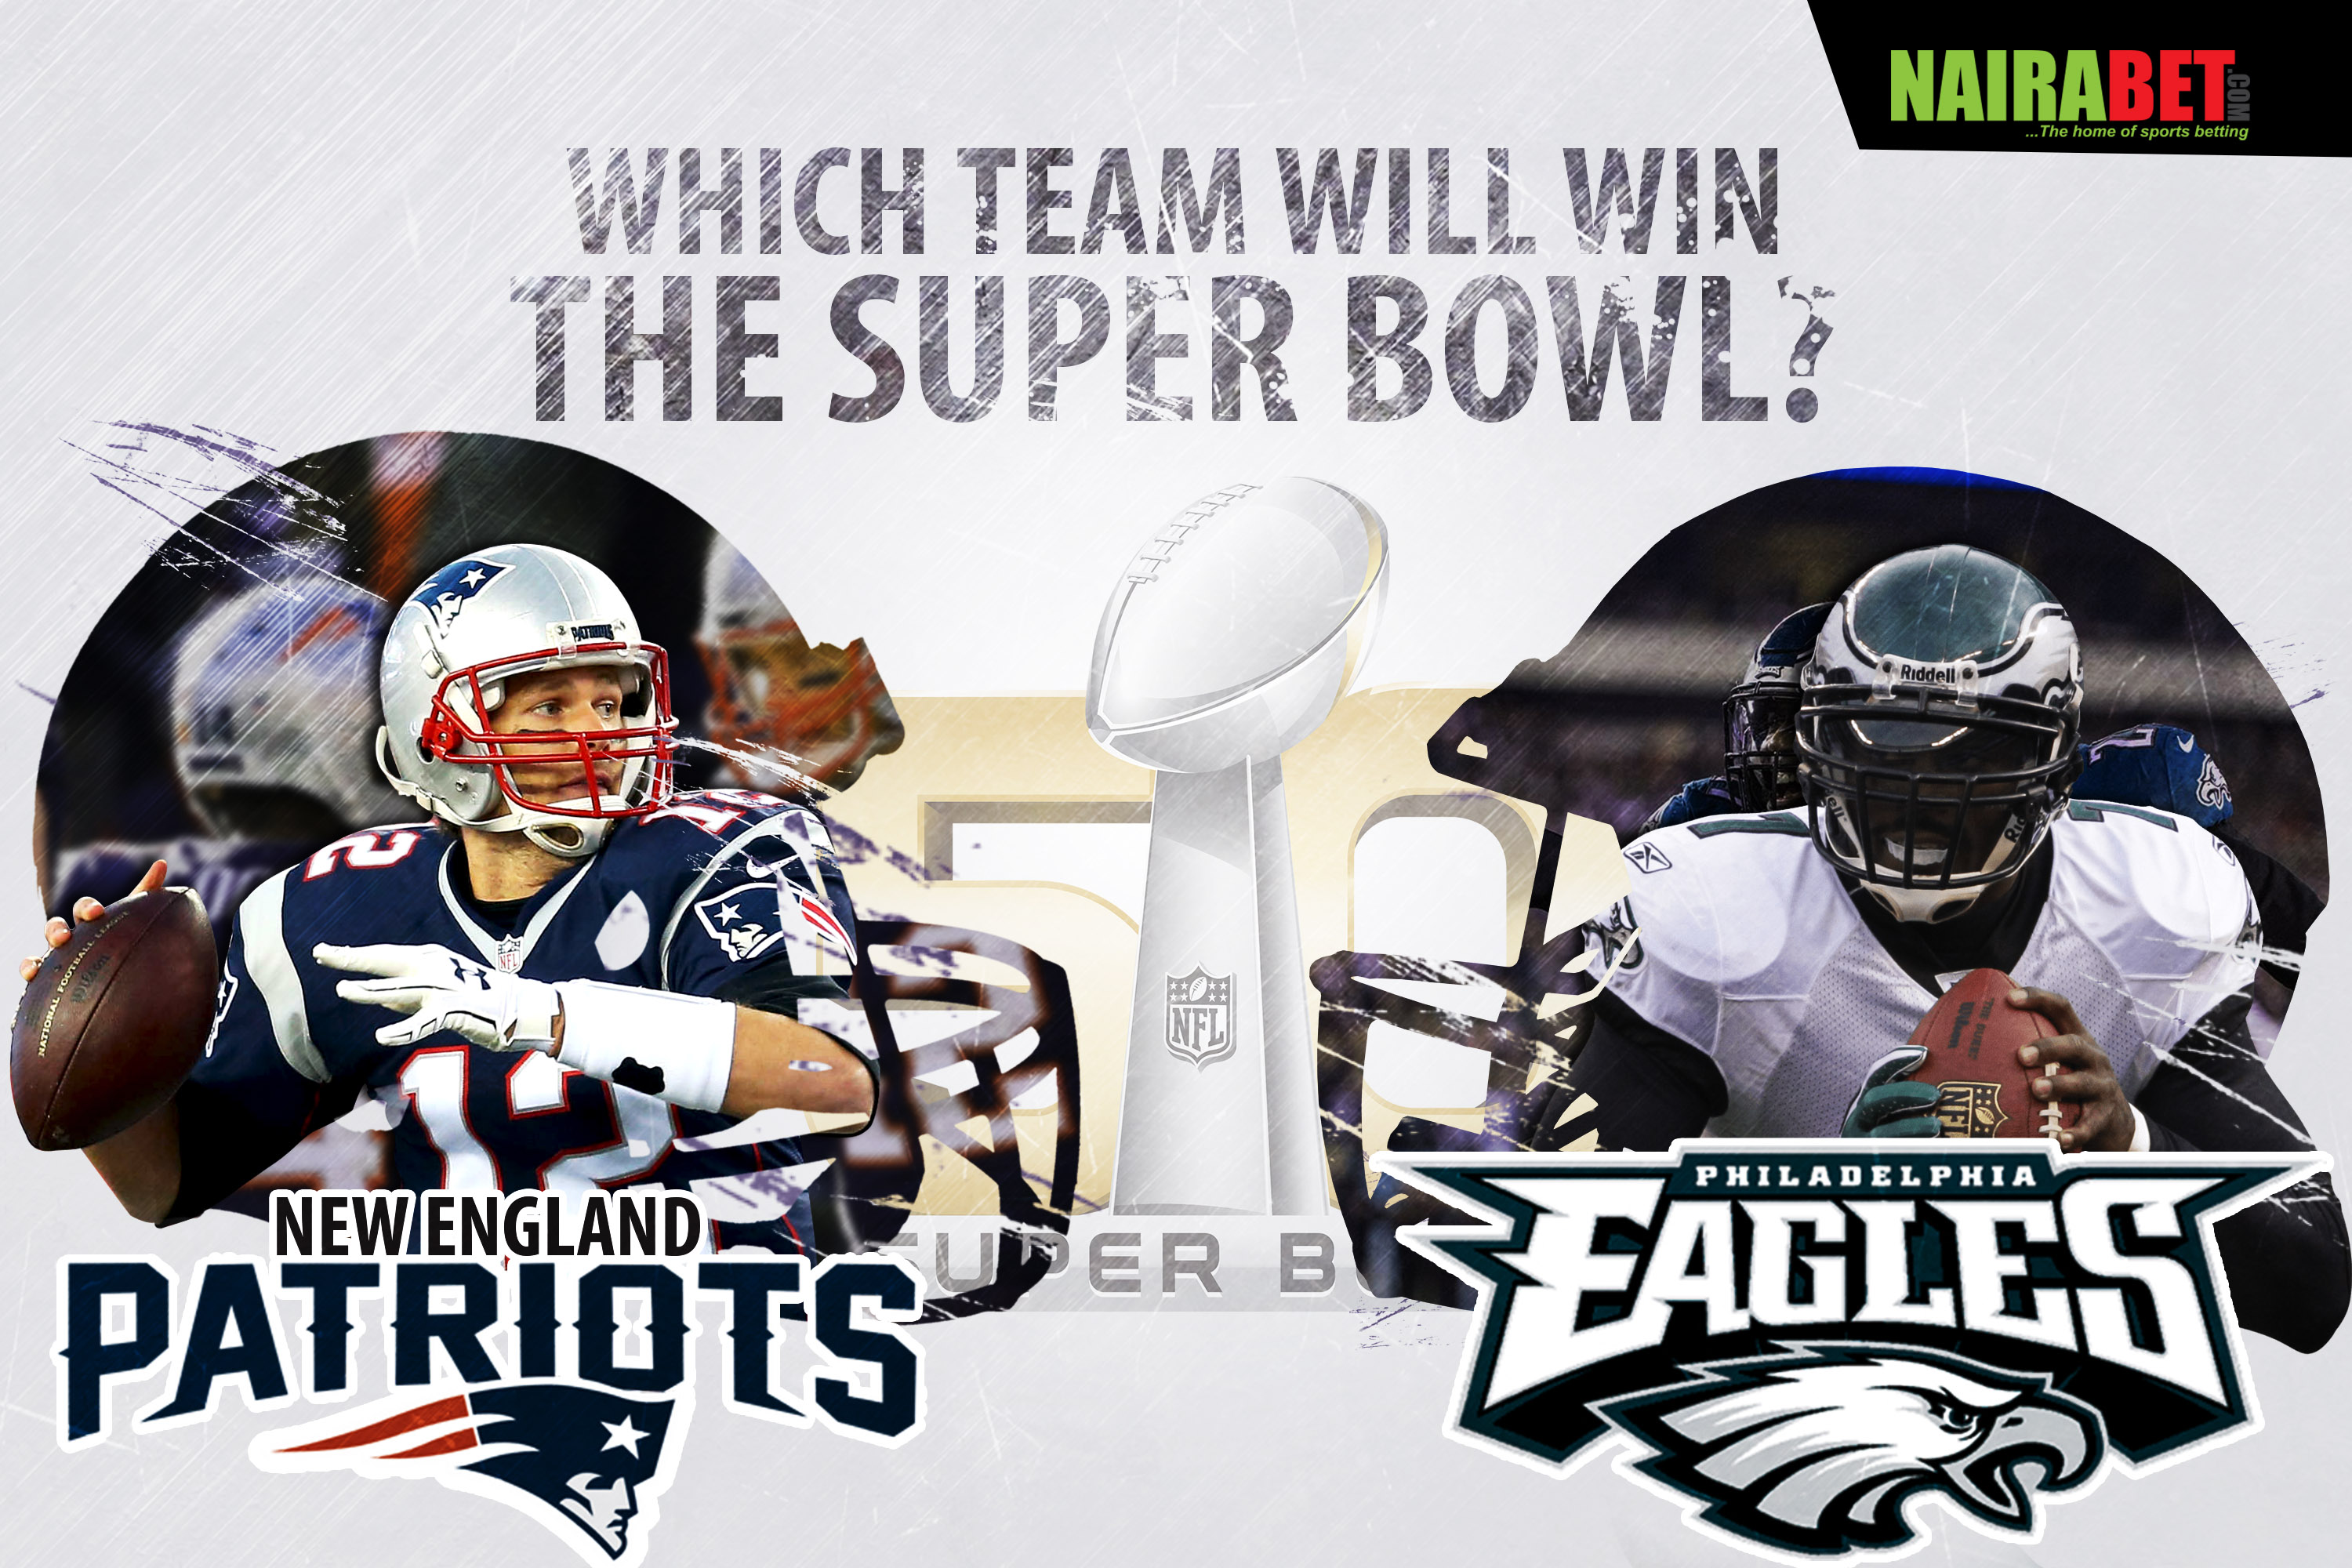 which team wins superbowl